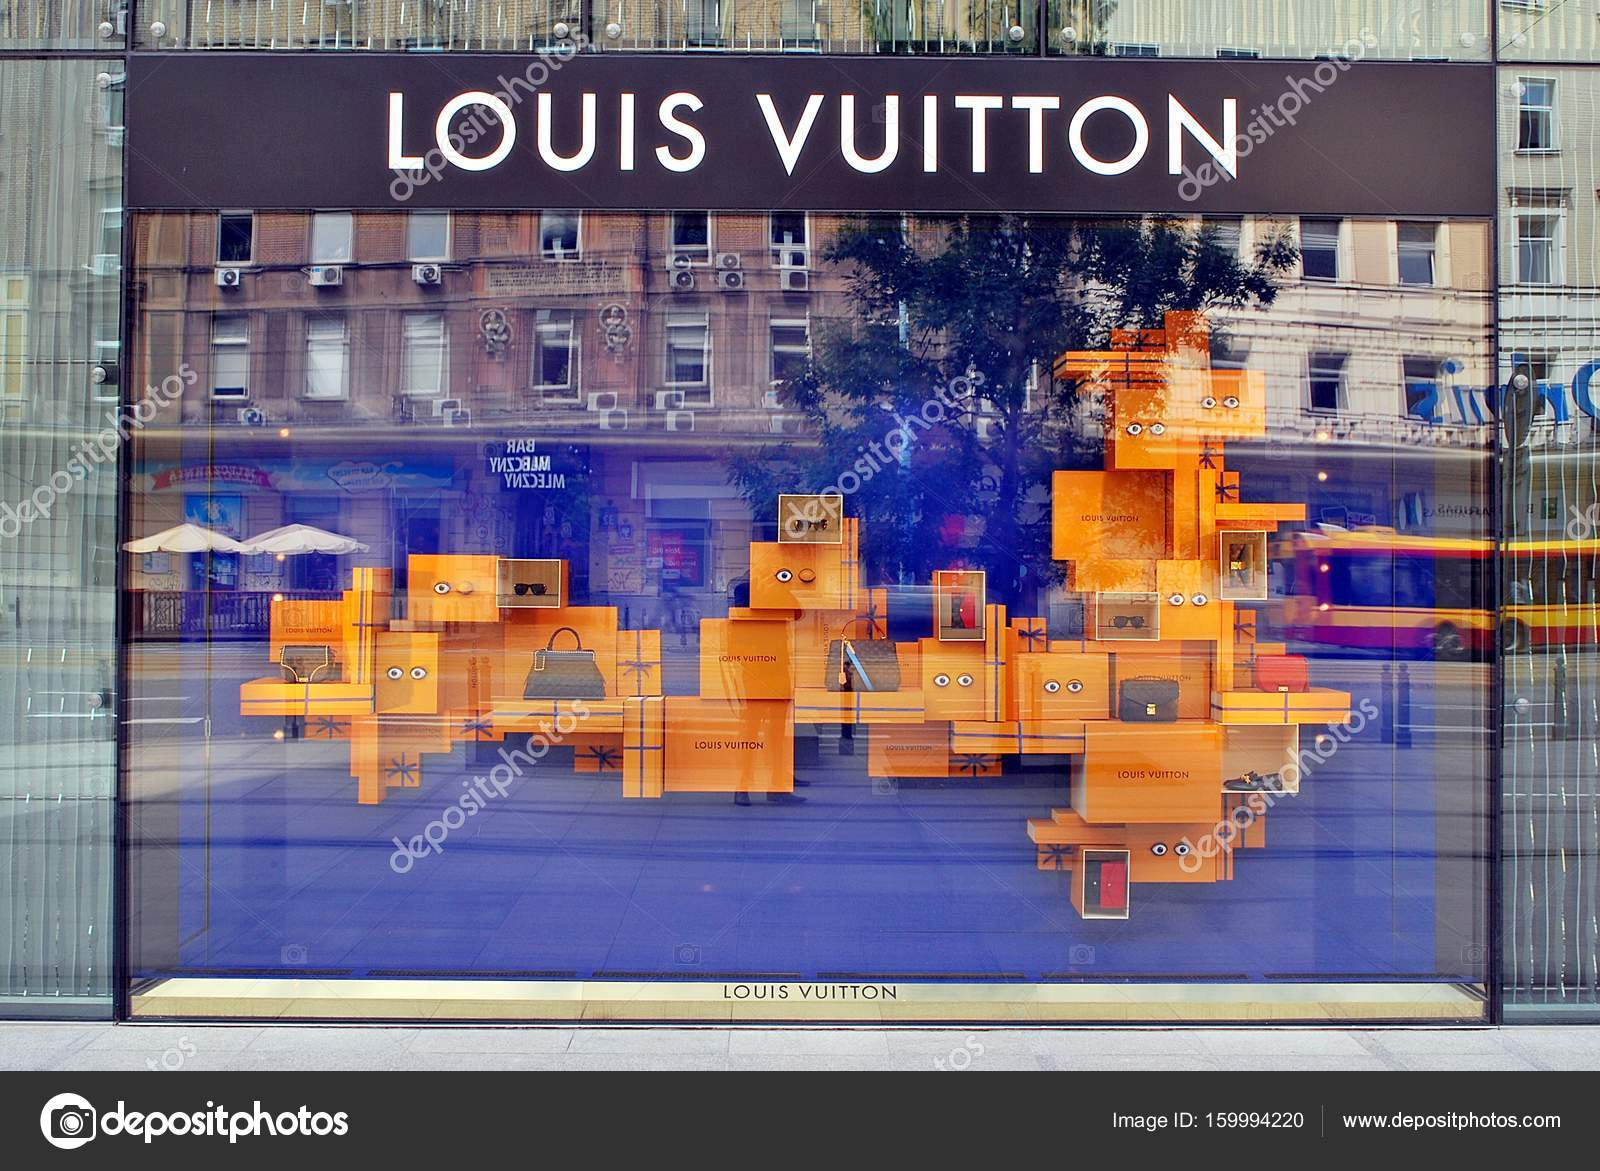 be895932d6 Louis Vuitton store. Shop locate in shopping mall Vitkac – Stock ...